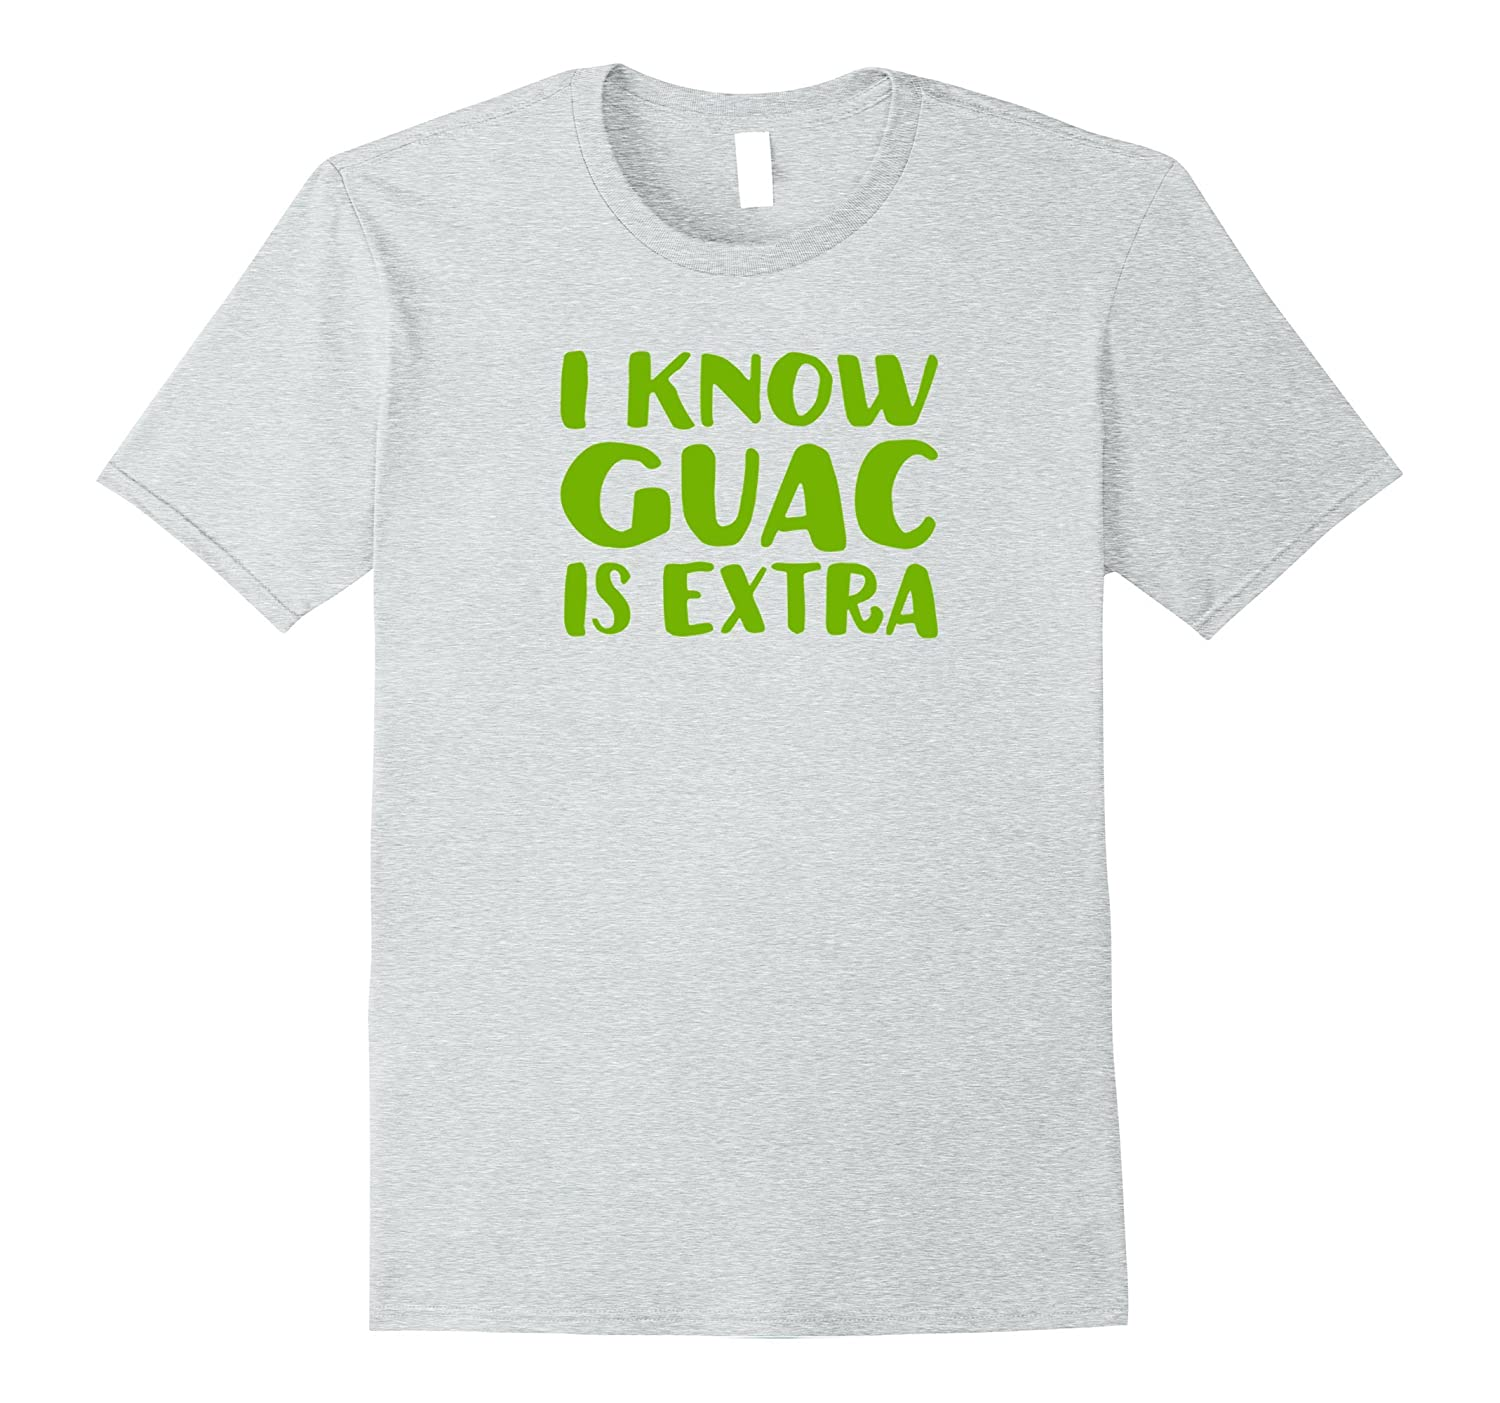 2abed5751 I Know Guac Is Extra T-Shirt-PL – Polozatee